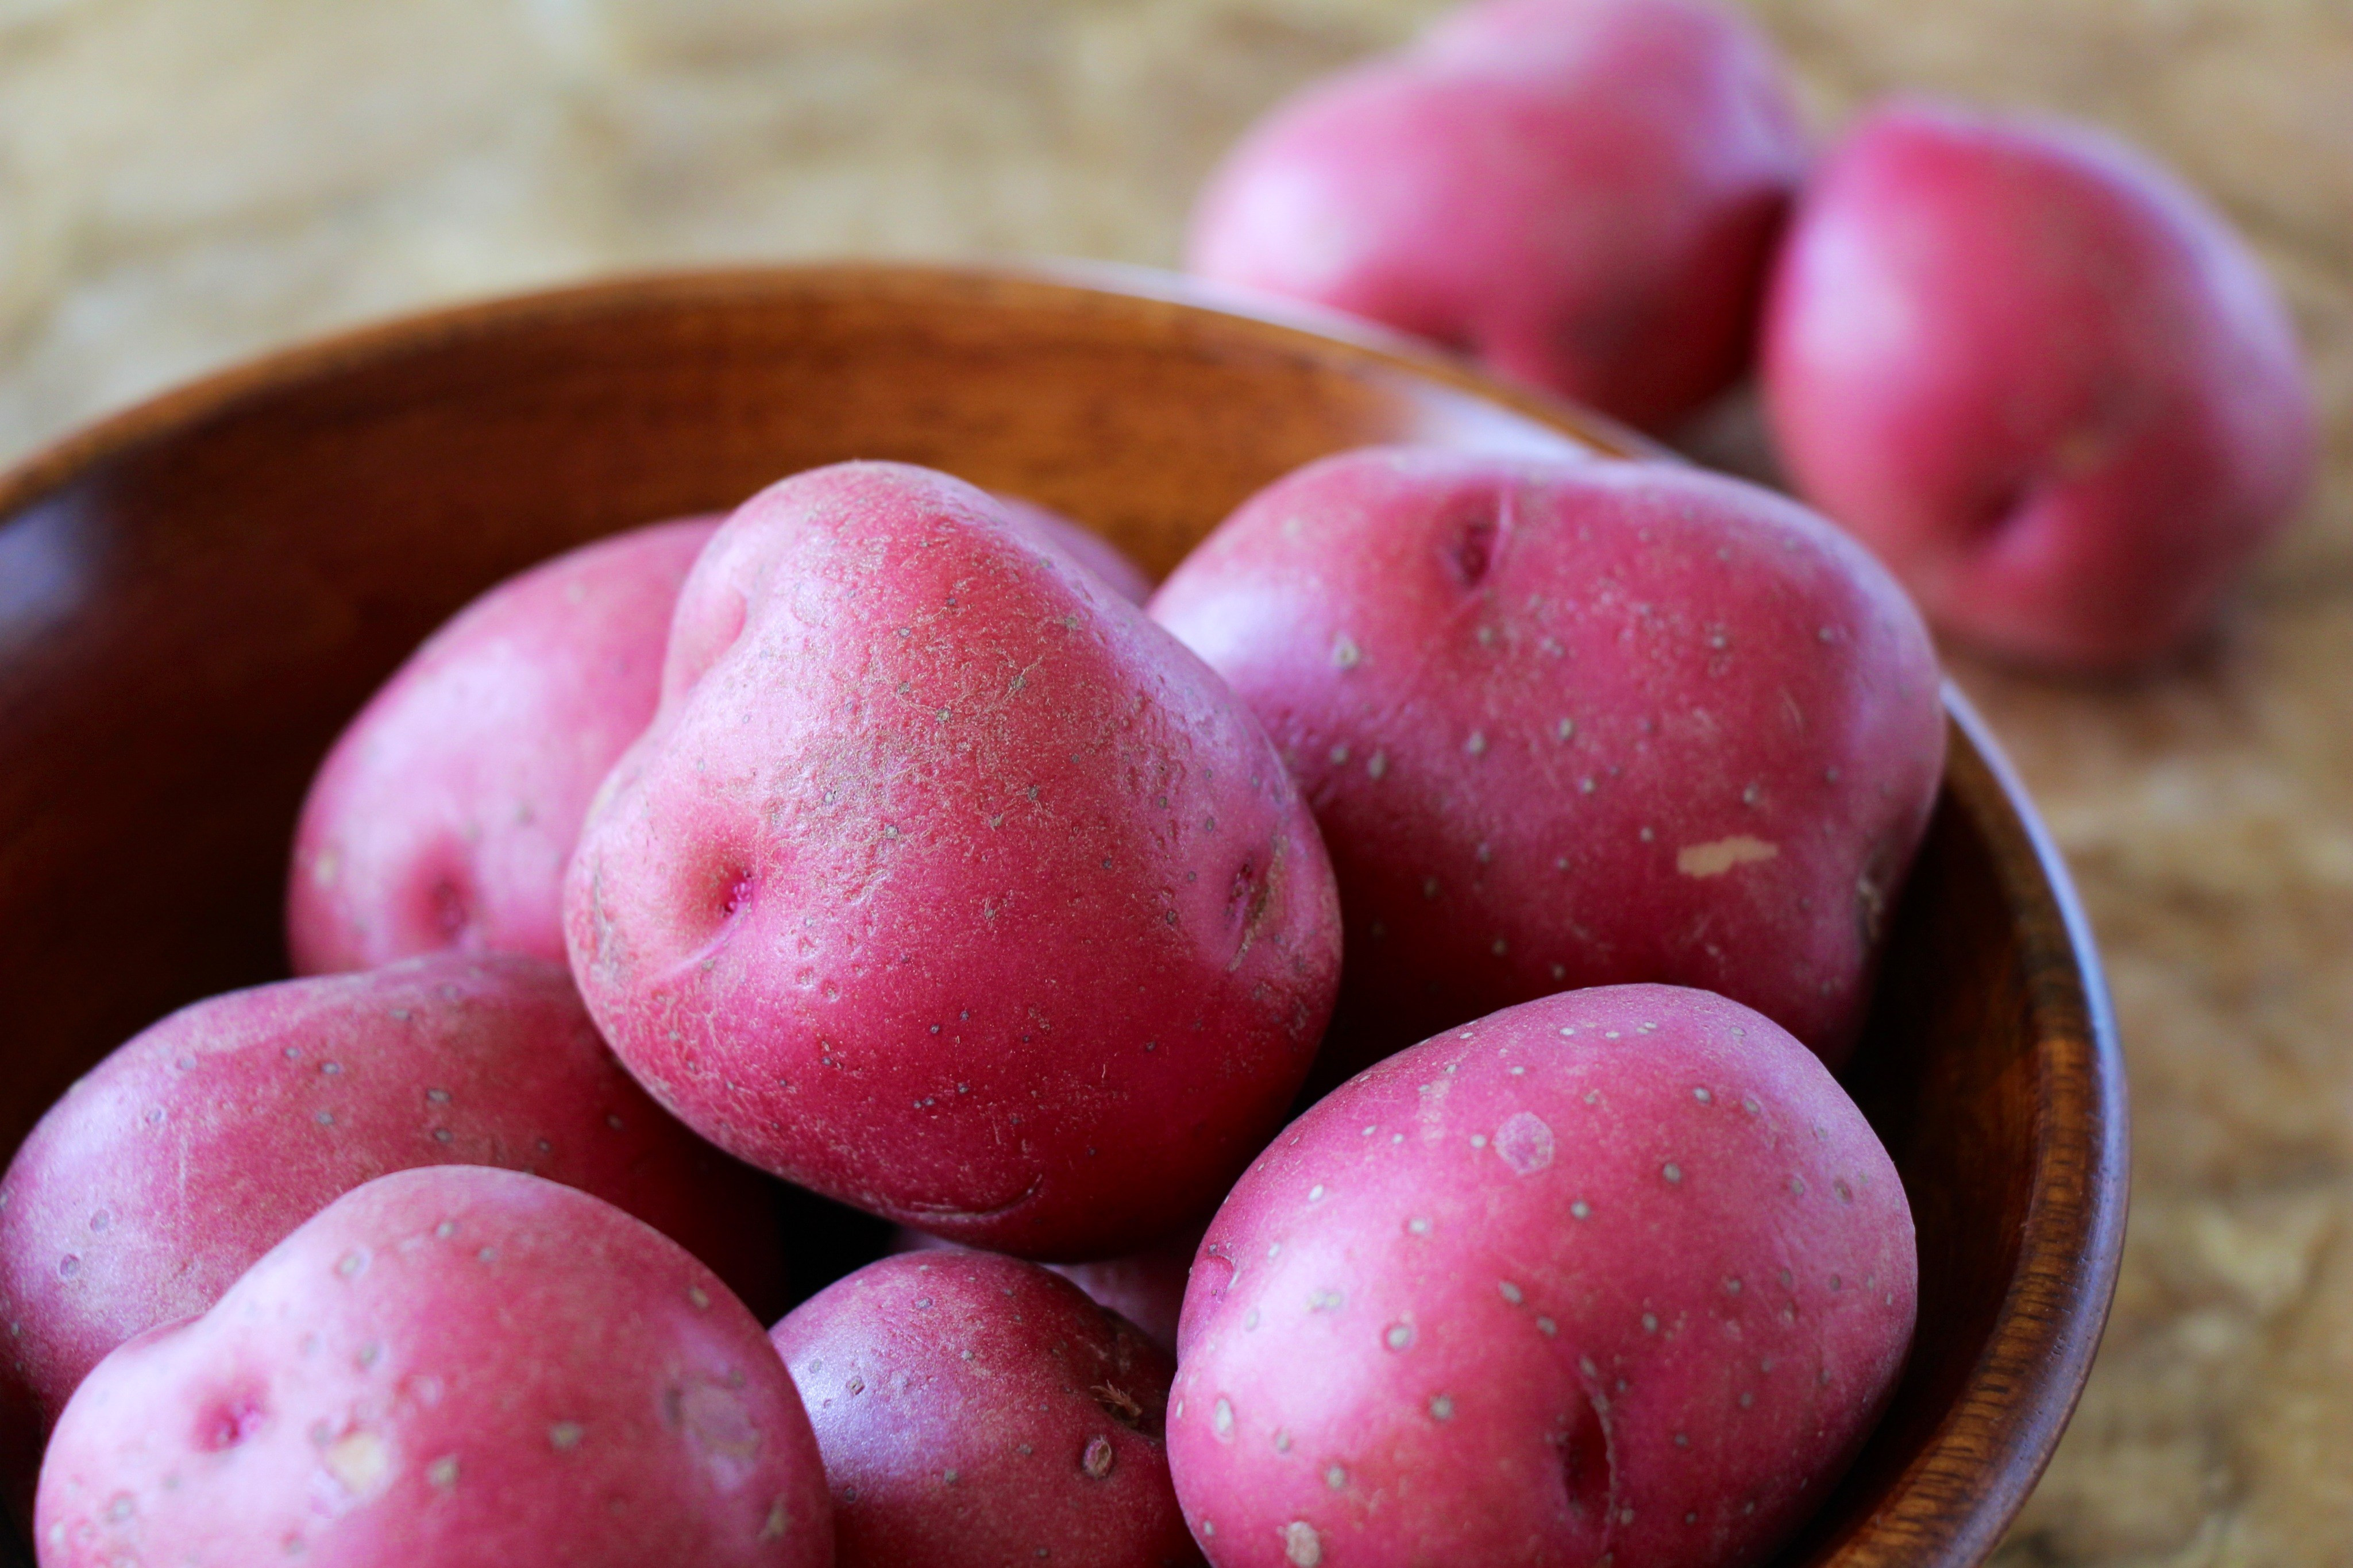 Red Potato Nutrition  The Not So Dirty Half Dozen the 6 Best Foods for